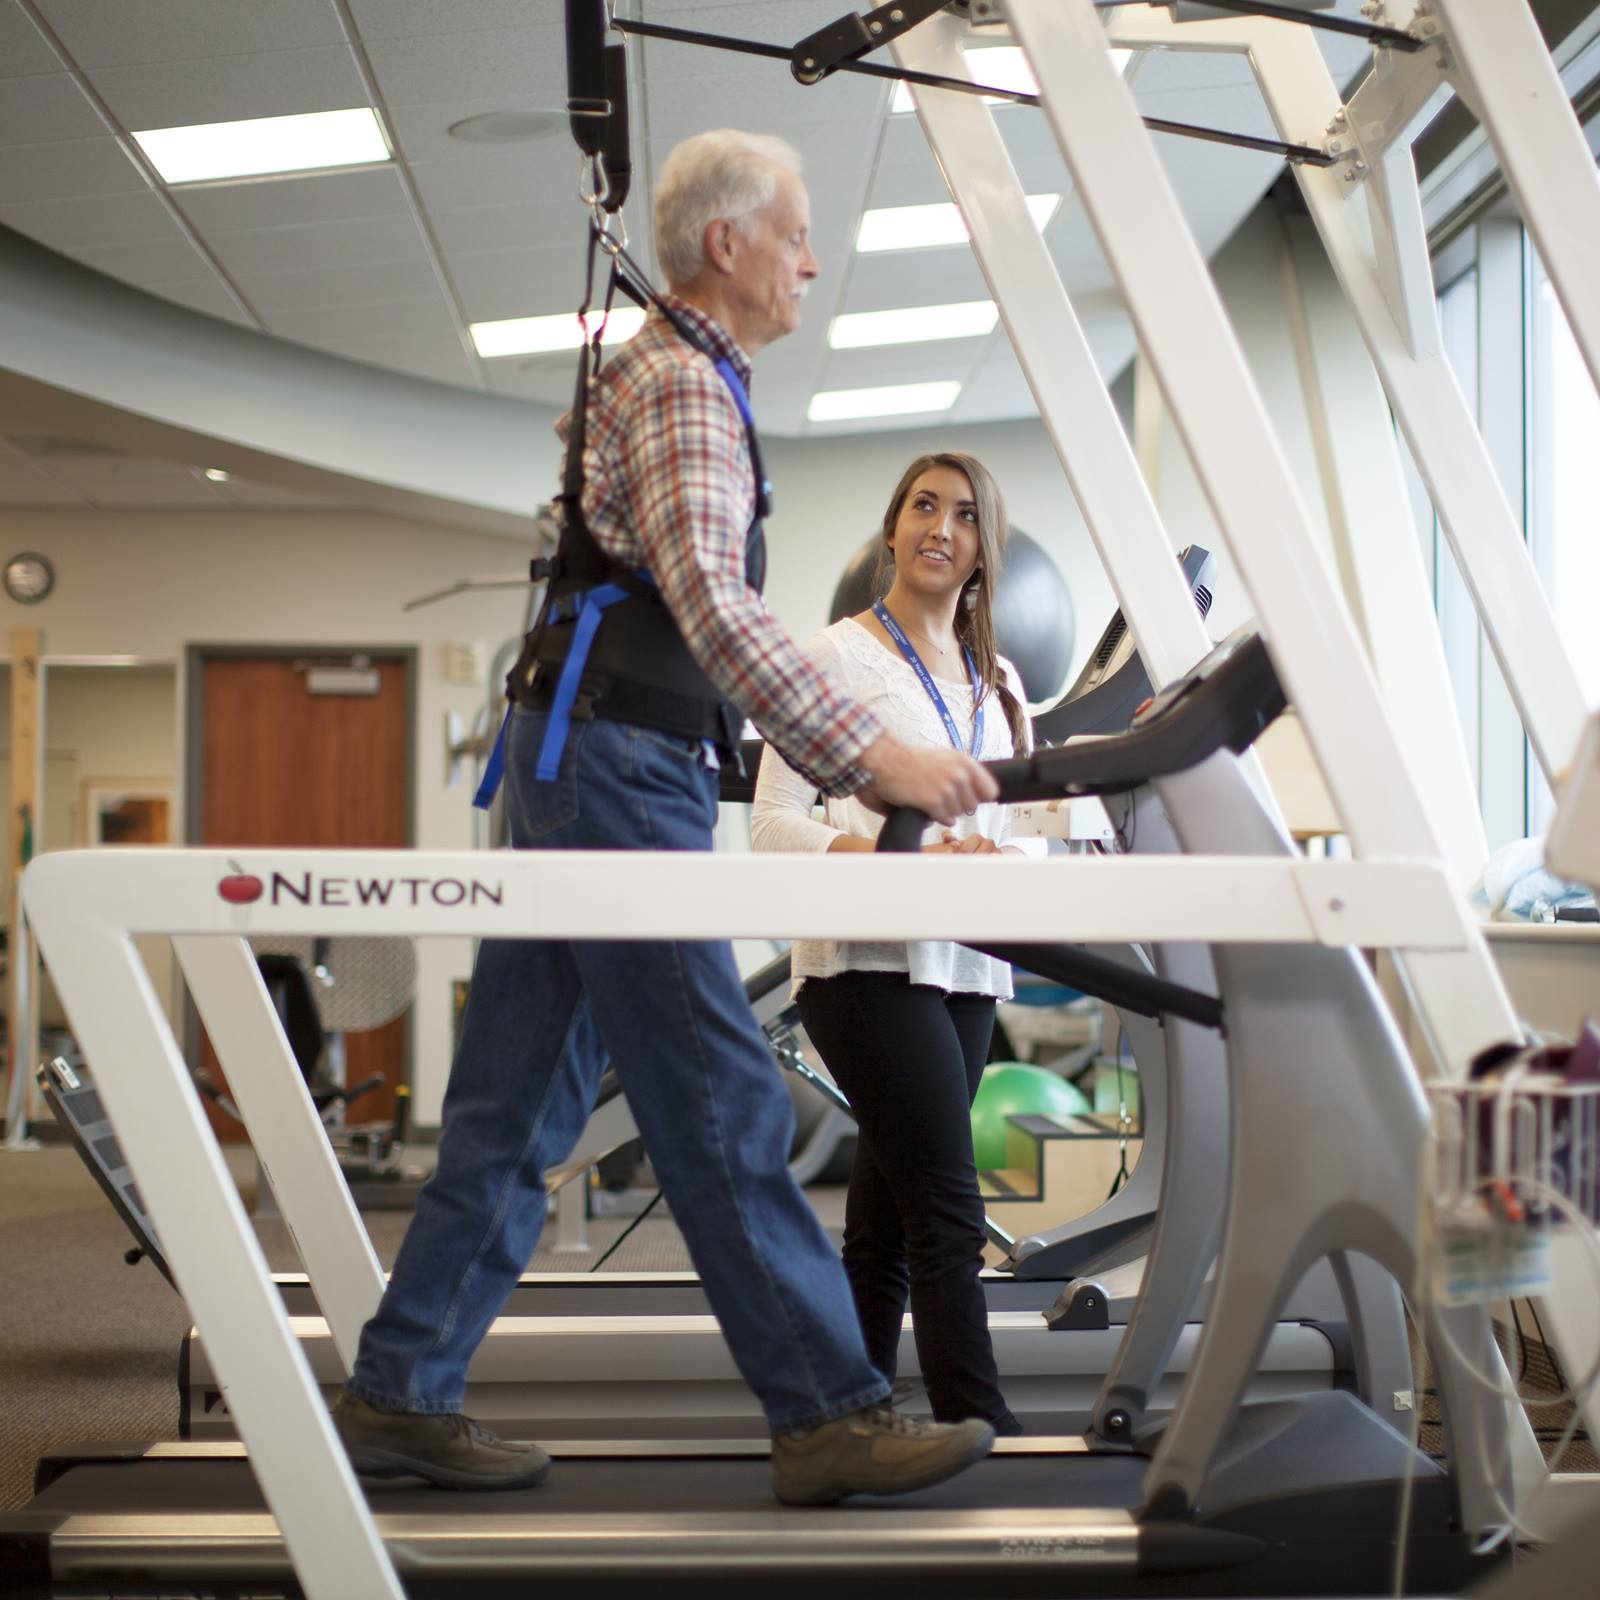 Health south physical therapy - Health South Physical Therapy 24